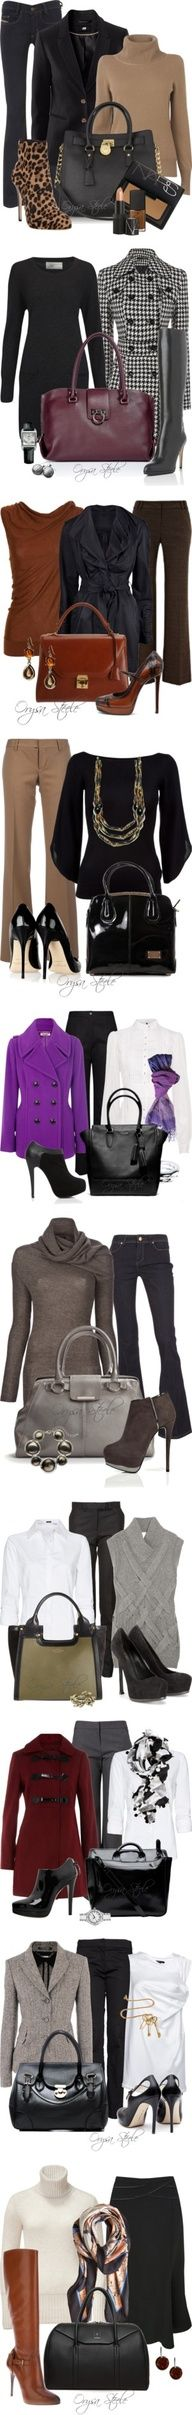 love this winter fashion #outfit www.finditforweddings.com